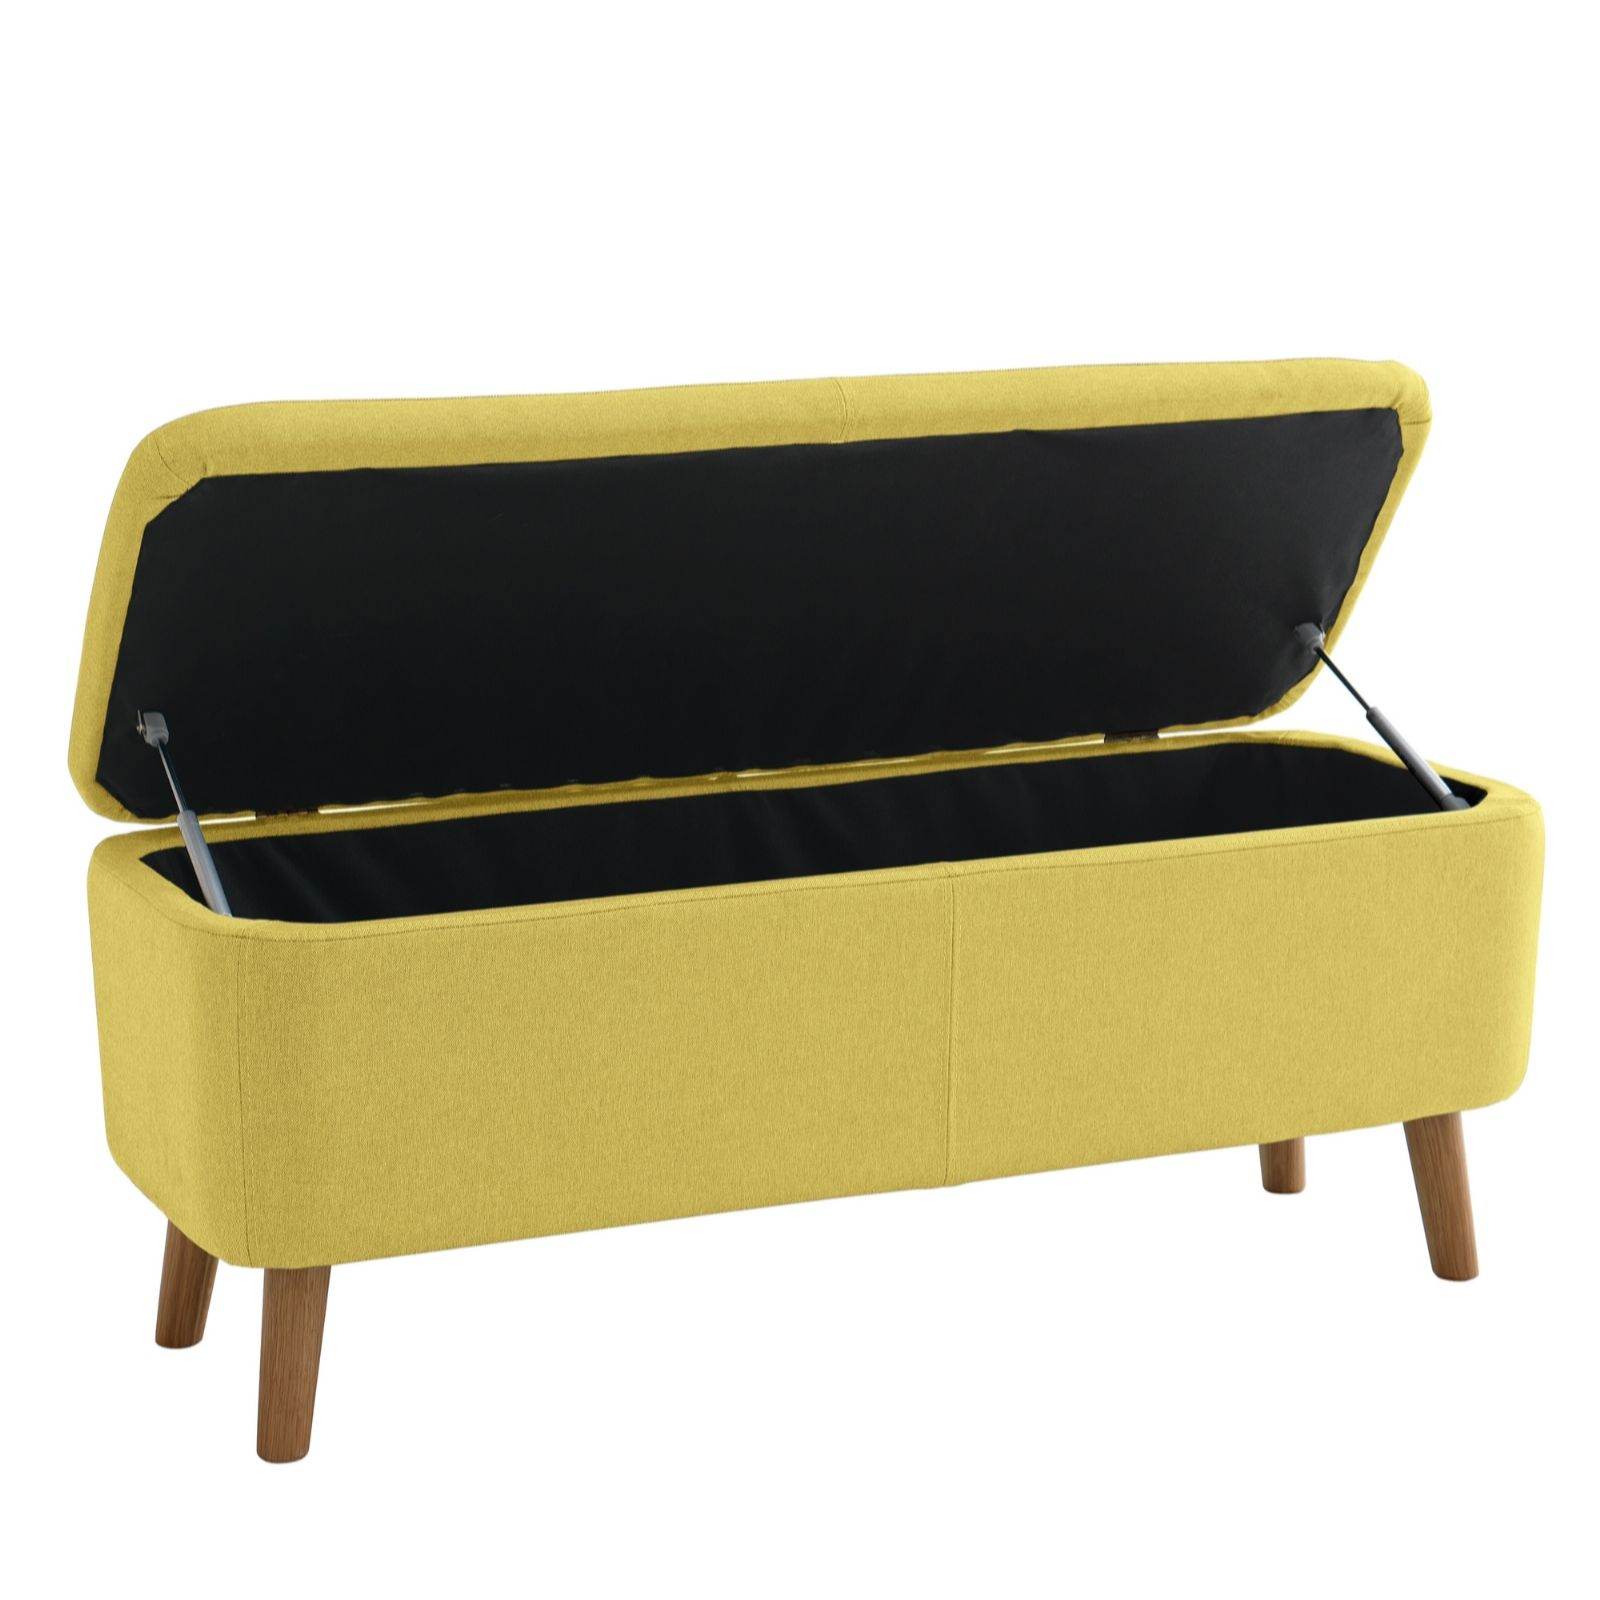 Incredible Habitat Jacobs Saffron Yellow Upholstered Storage Bench Qvc Uk Gmtry Best Dining Table And Chair Ideas Images Gmtryco